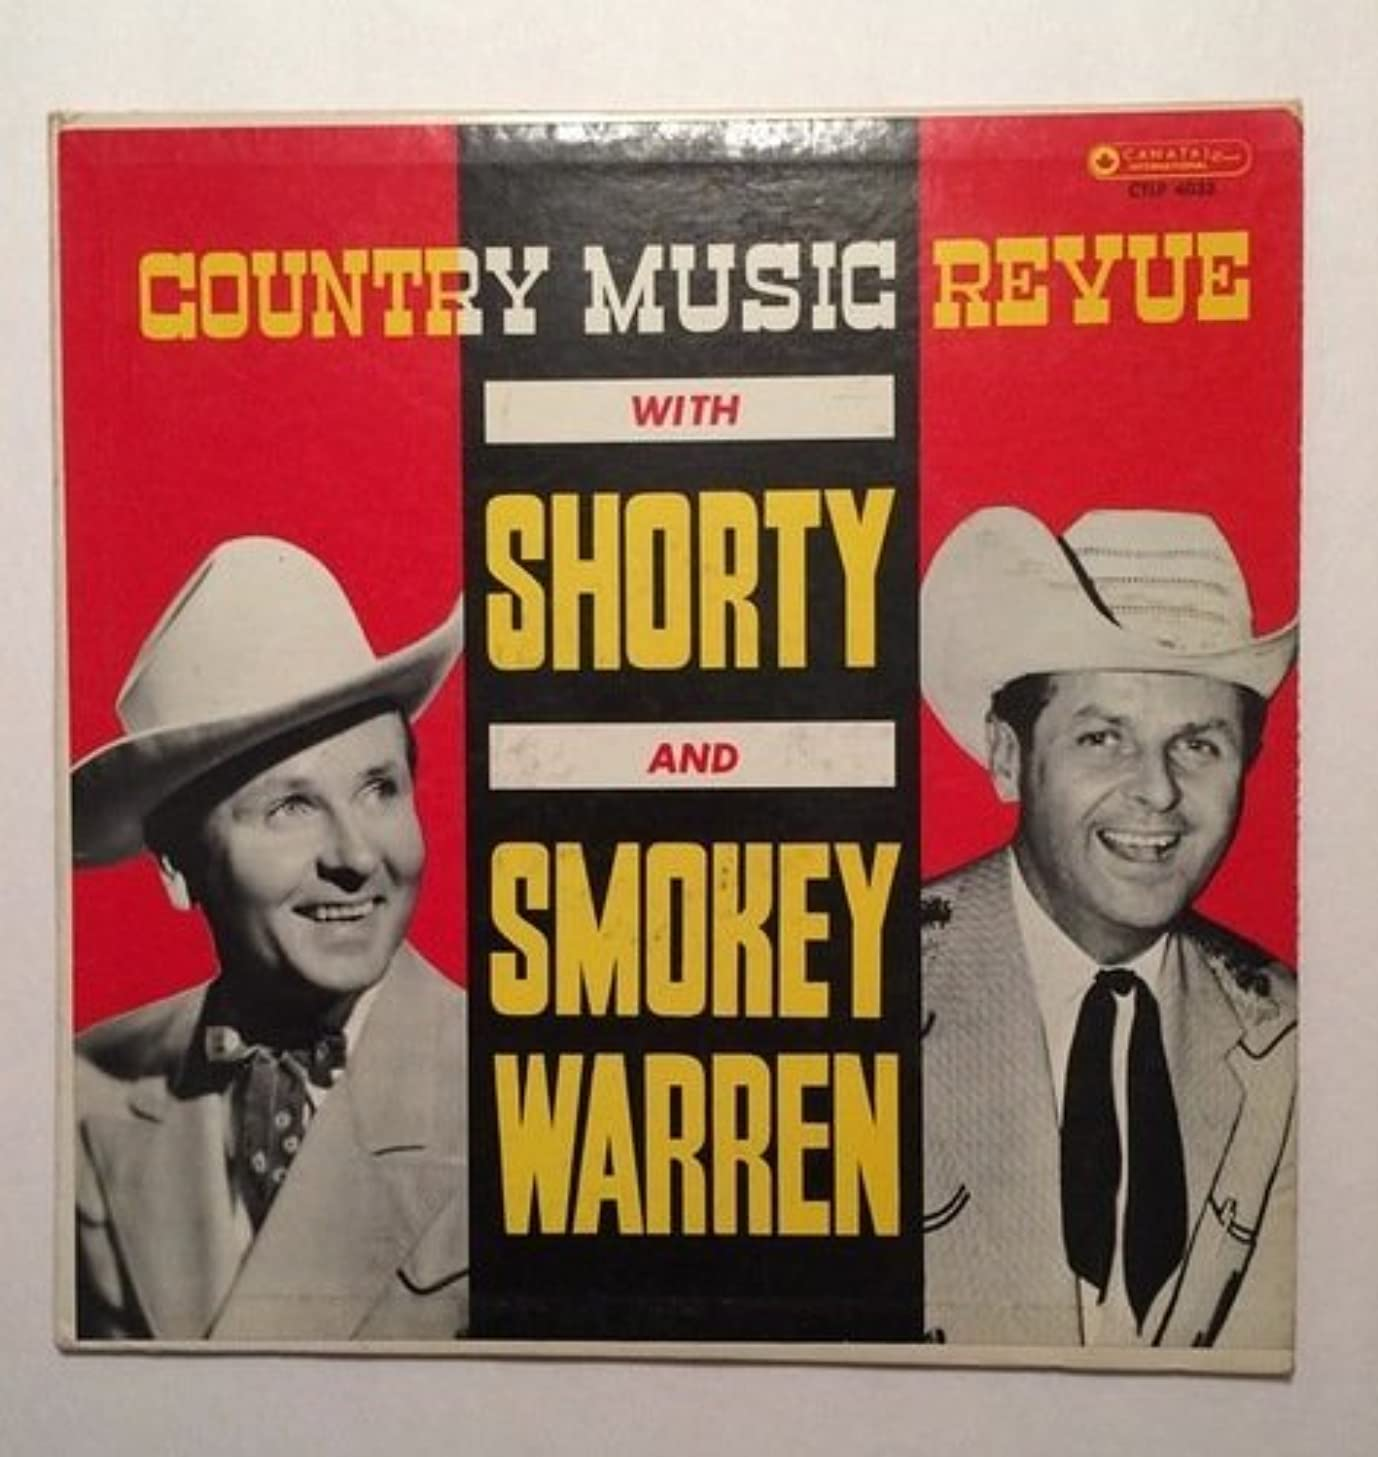 1959-1961? Country Music Revue with Shorty and Smokey Warren Featuring Dottie Mae Cantal International CTLP 4033 CLM 1085 Terca Records 2 Rosemount Weston Ontario